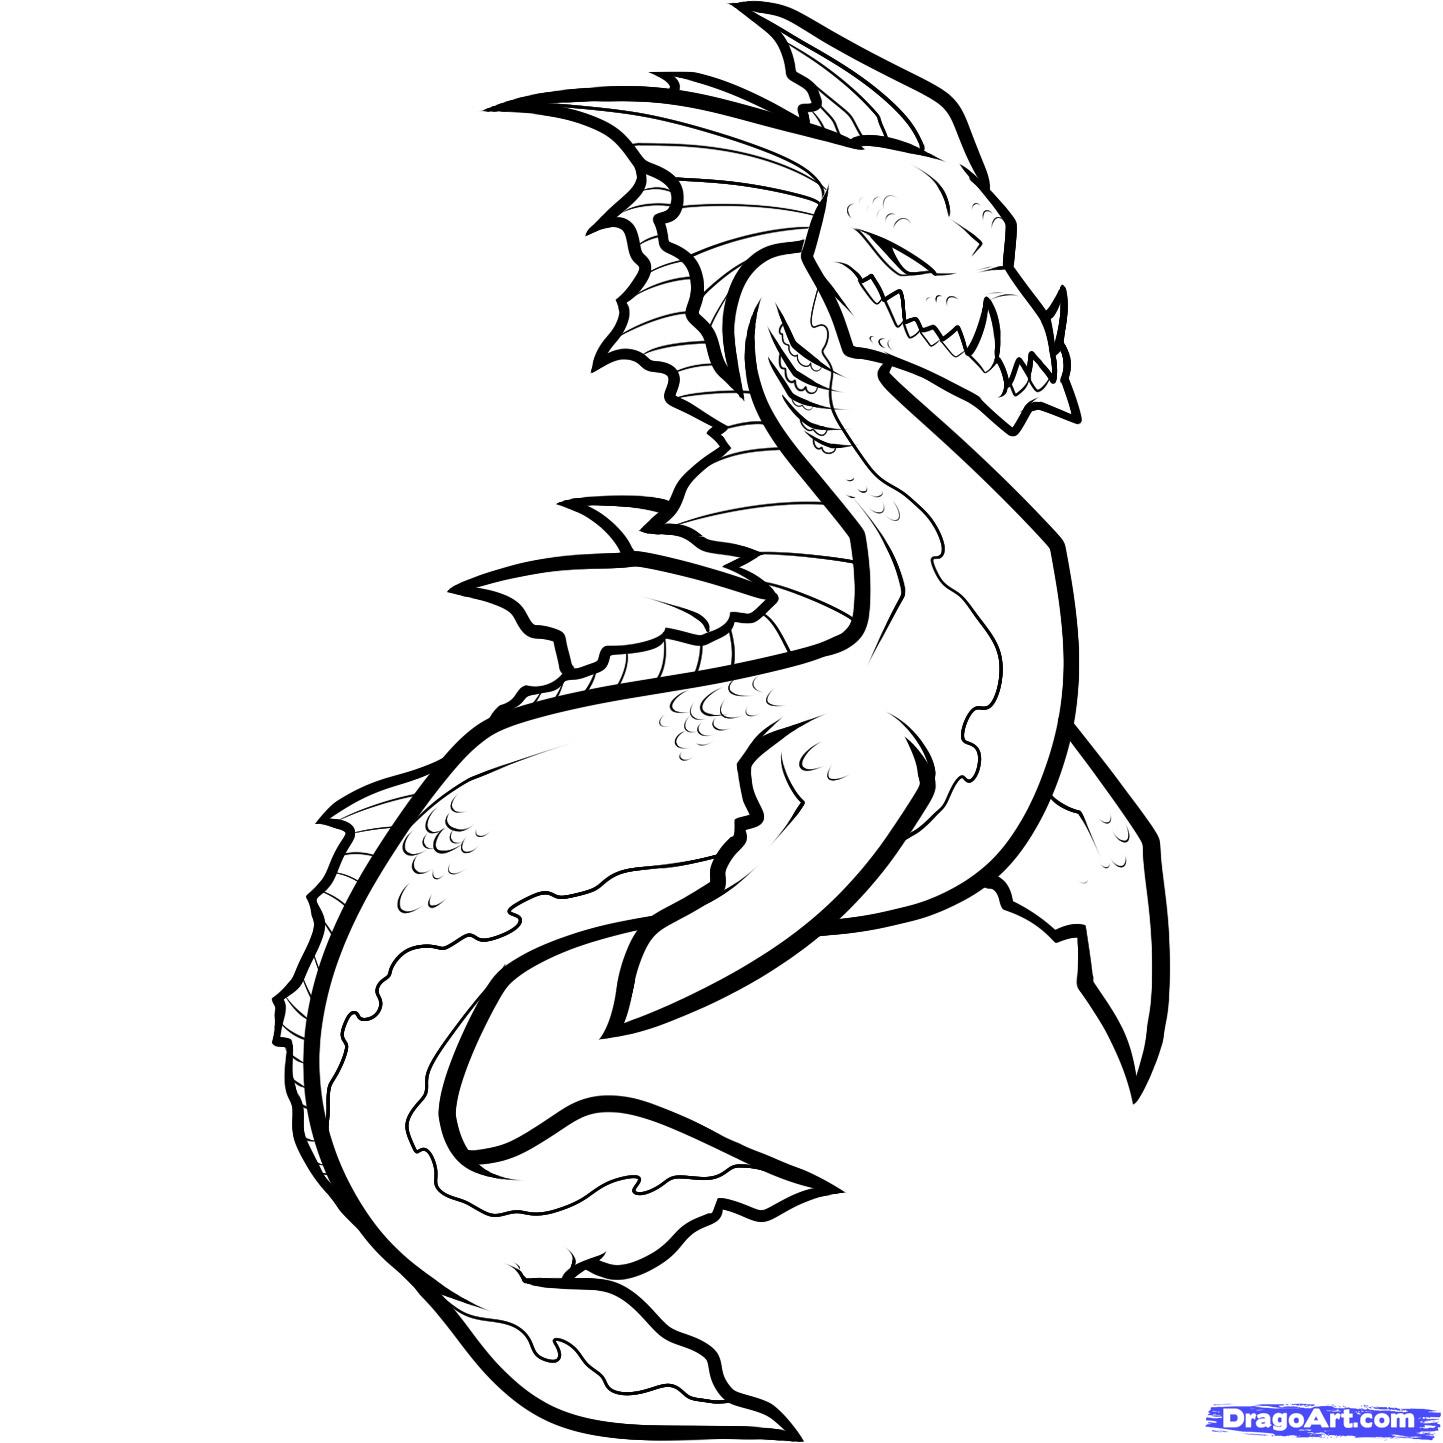 1443x1443 Monster Creature How To Draw A Sea Creature Sea Creature Step